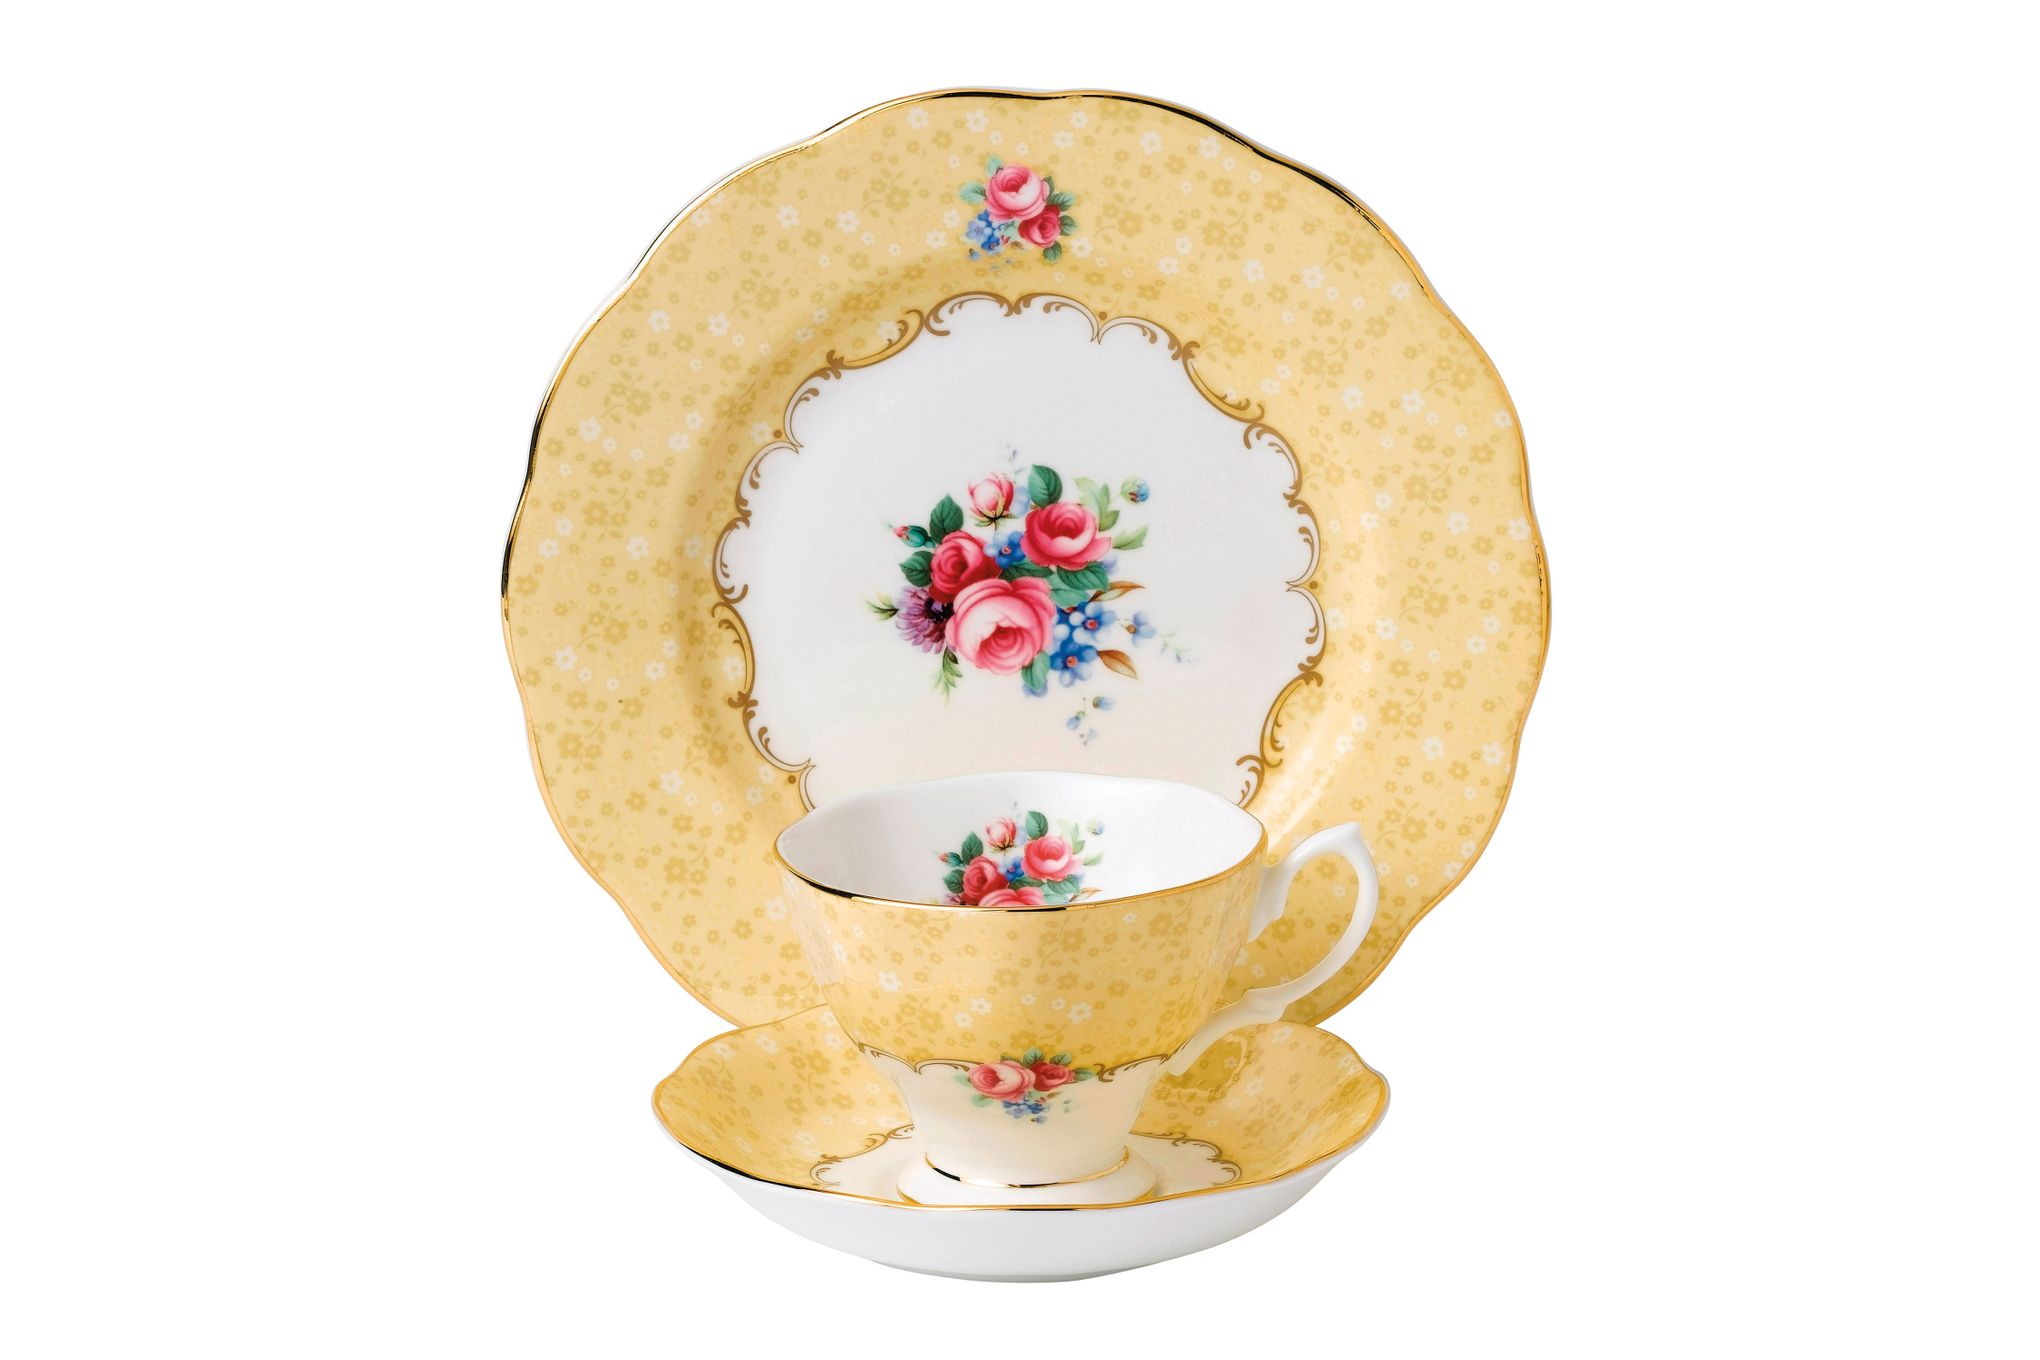 Royal Albert 100 Years of Royal Albert 3 Piece Set Bouquet, 1990 ,Teacup & Saucer, Plate 20cm thumb 1